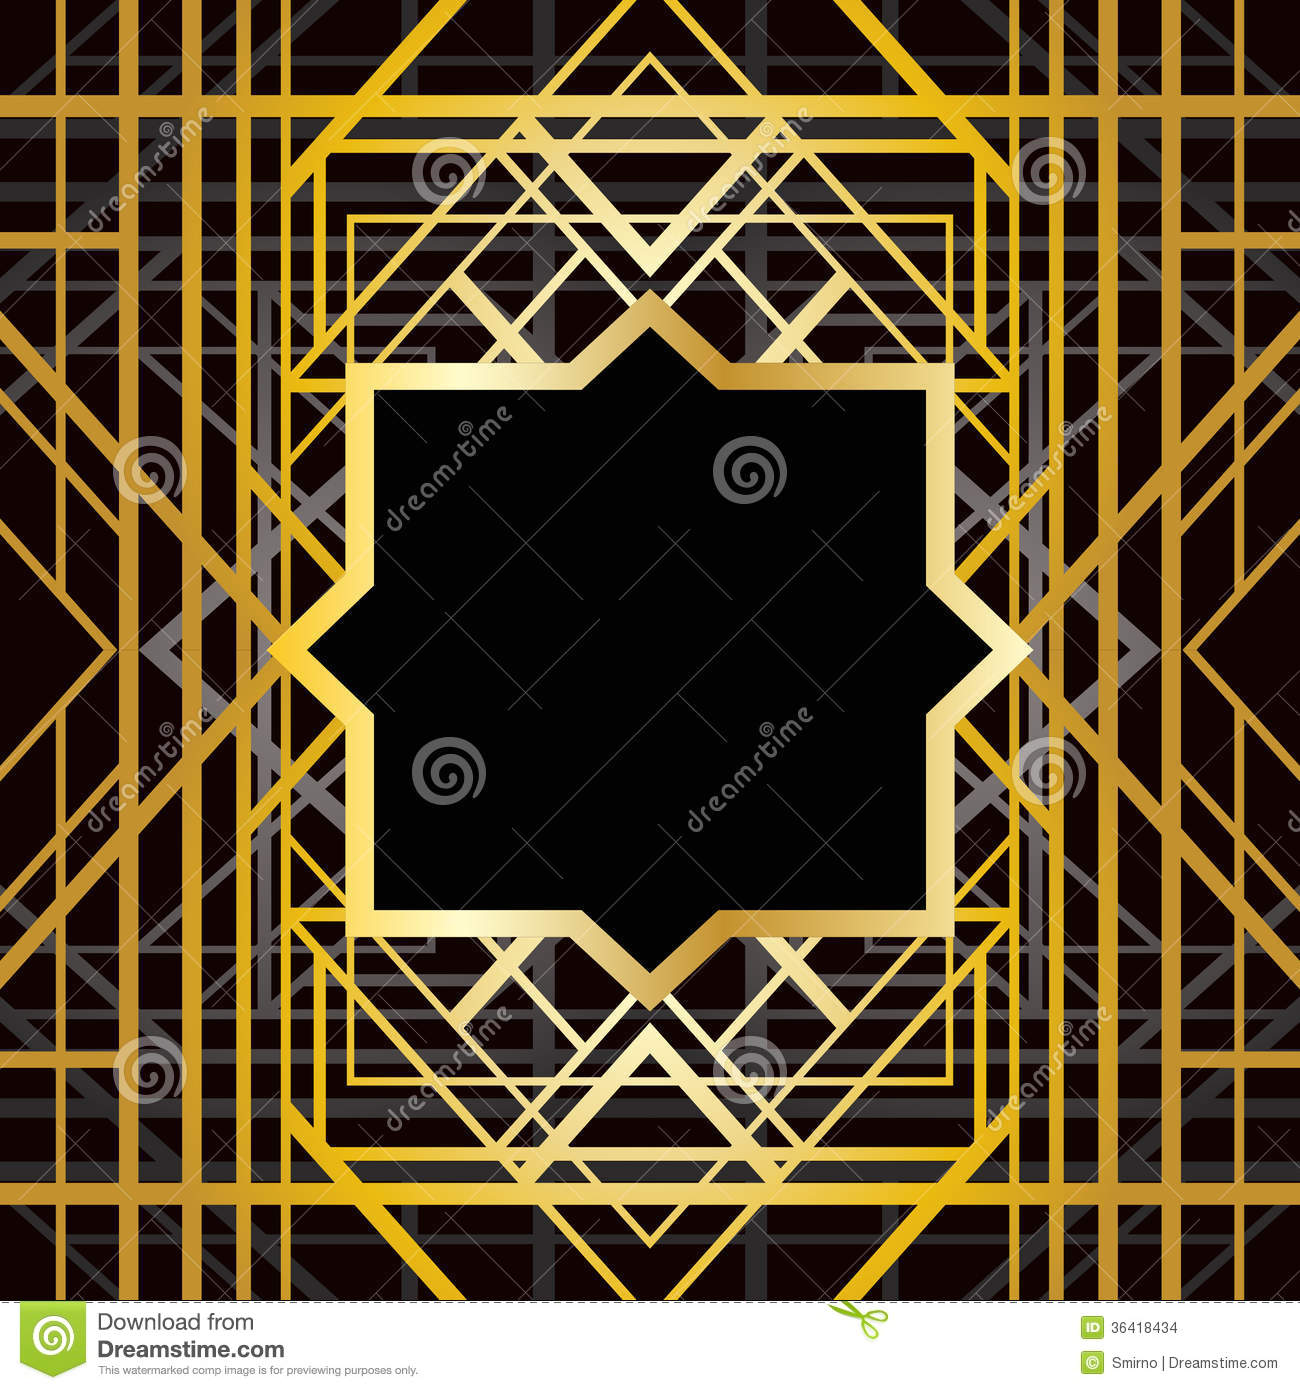 Art Deco Geometric Pattern Stock Images - Image: 36418434